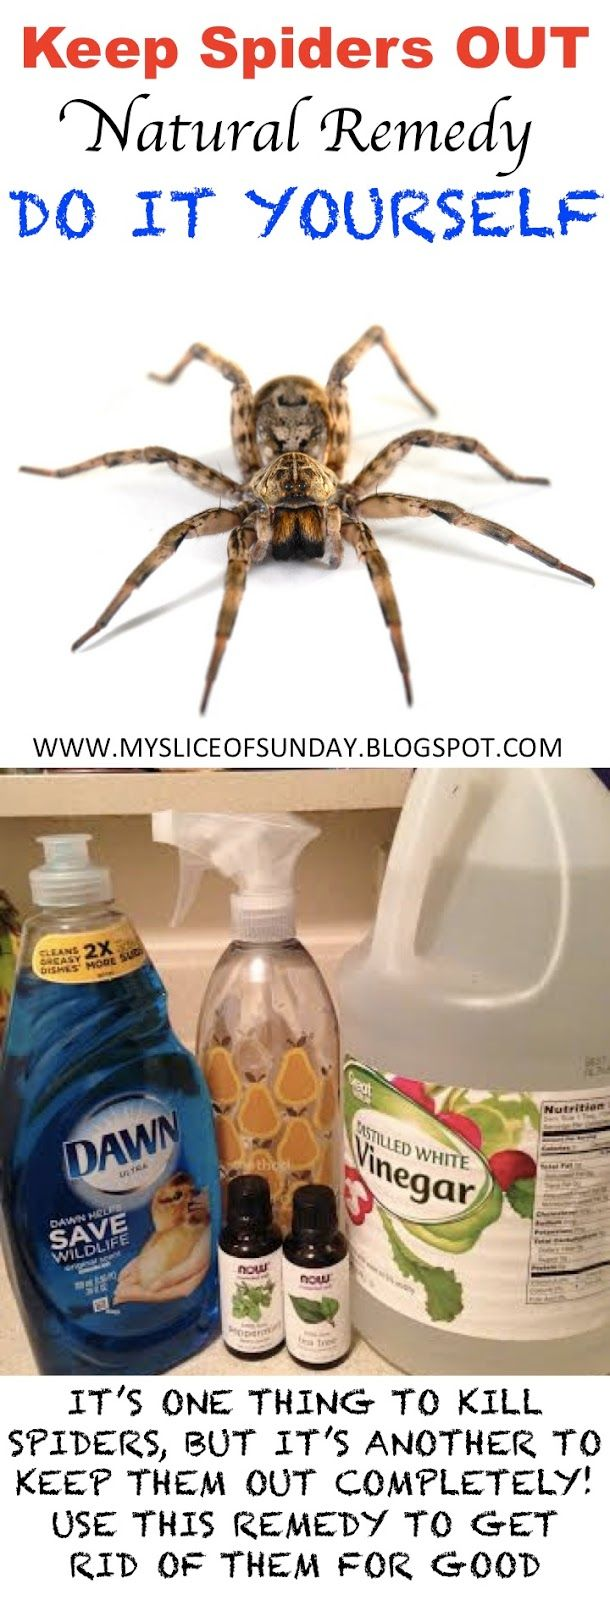 DIY SPIDER KILLER - Natural Remedy to keep spiders out of your home for good !! LysssssAAAAAAAAA We neeeed this